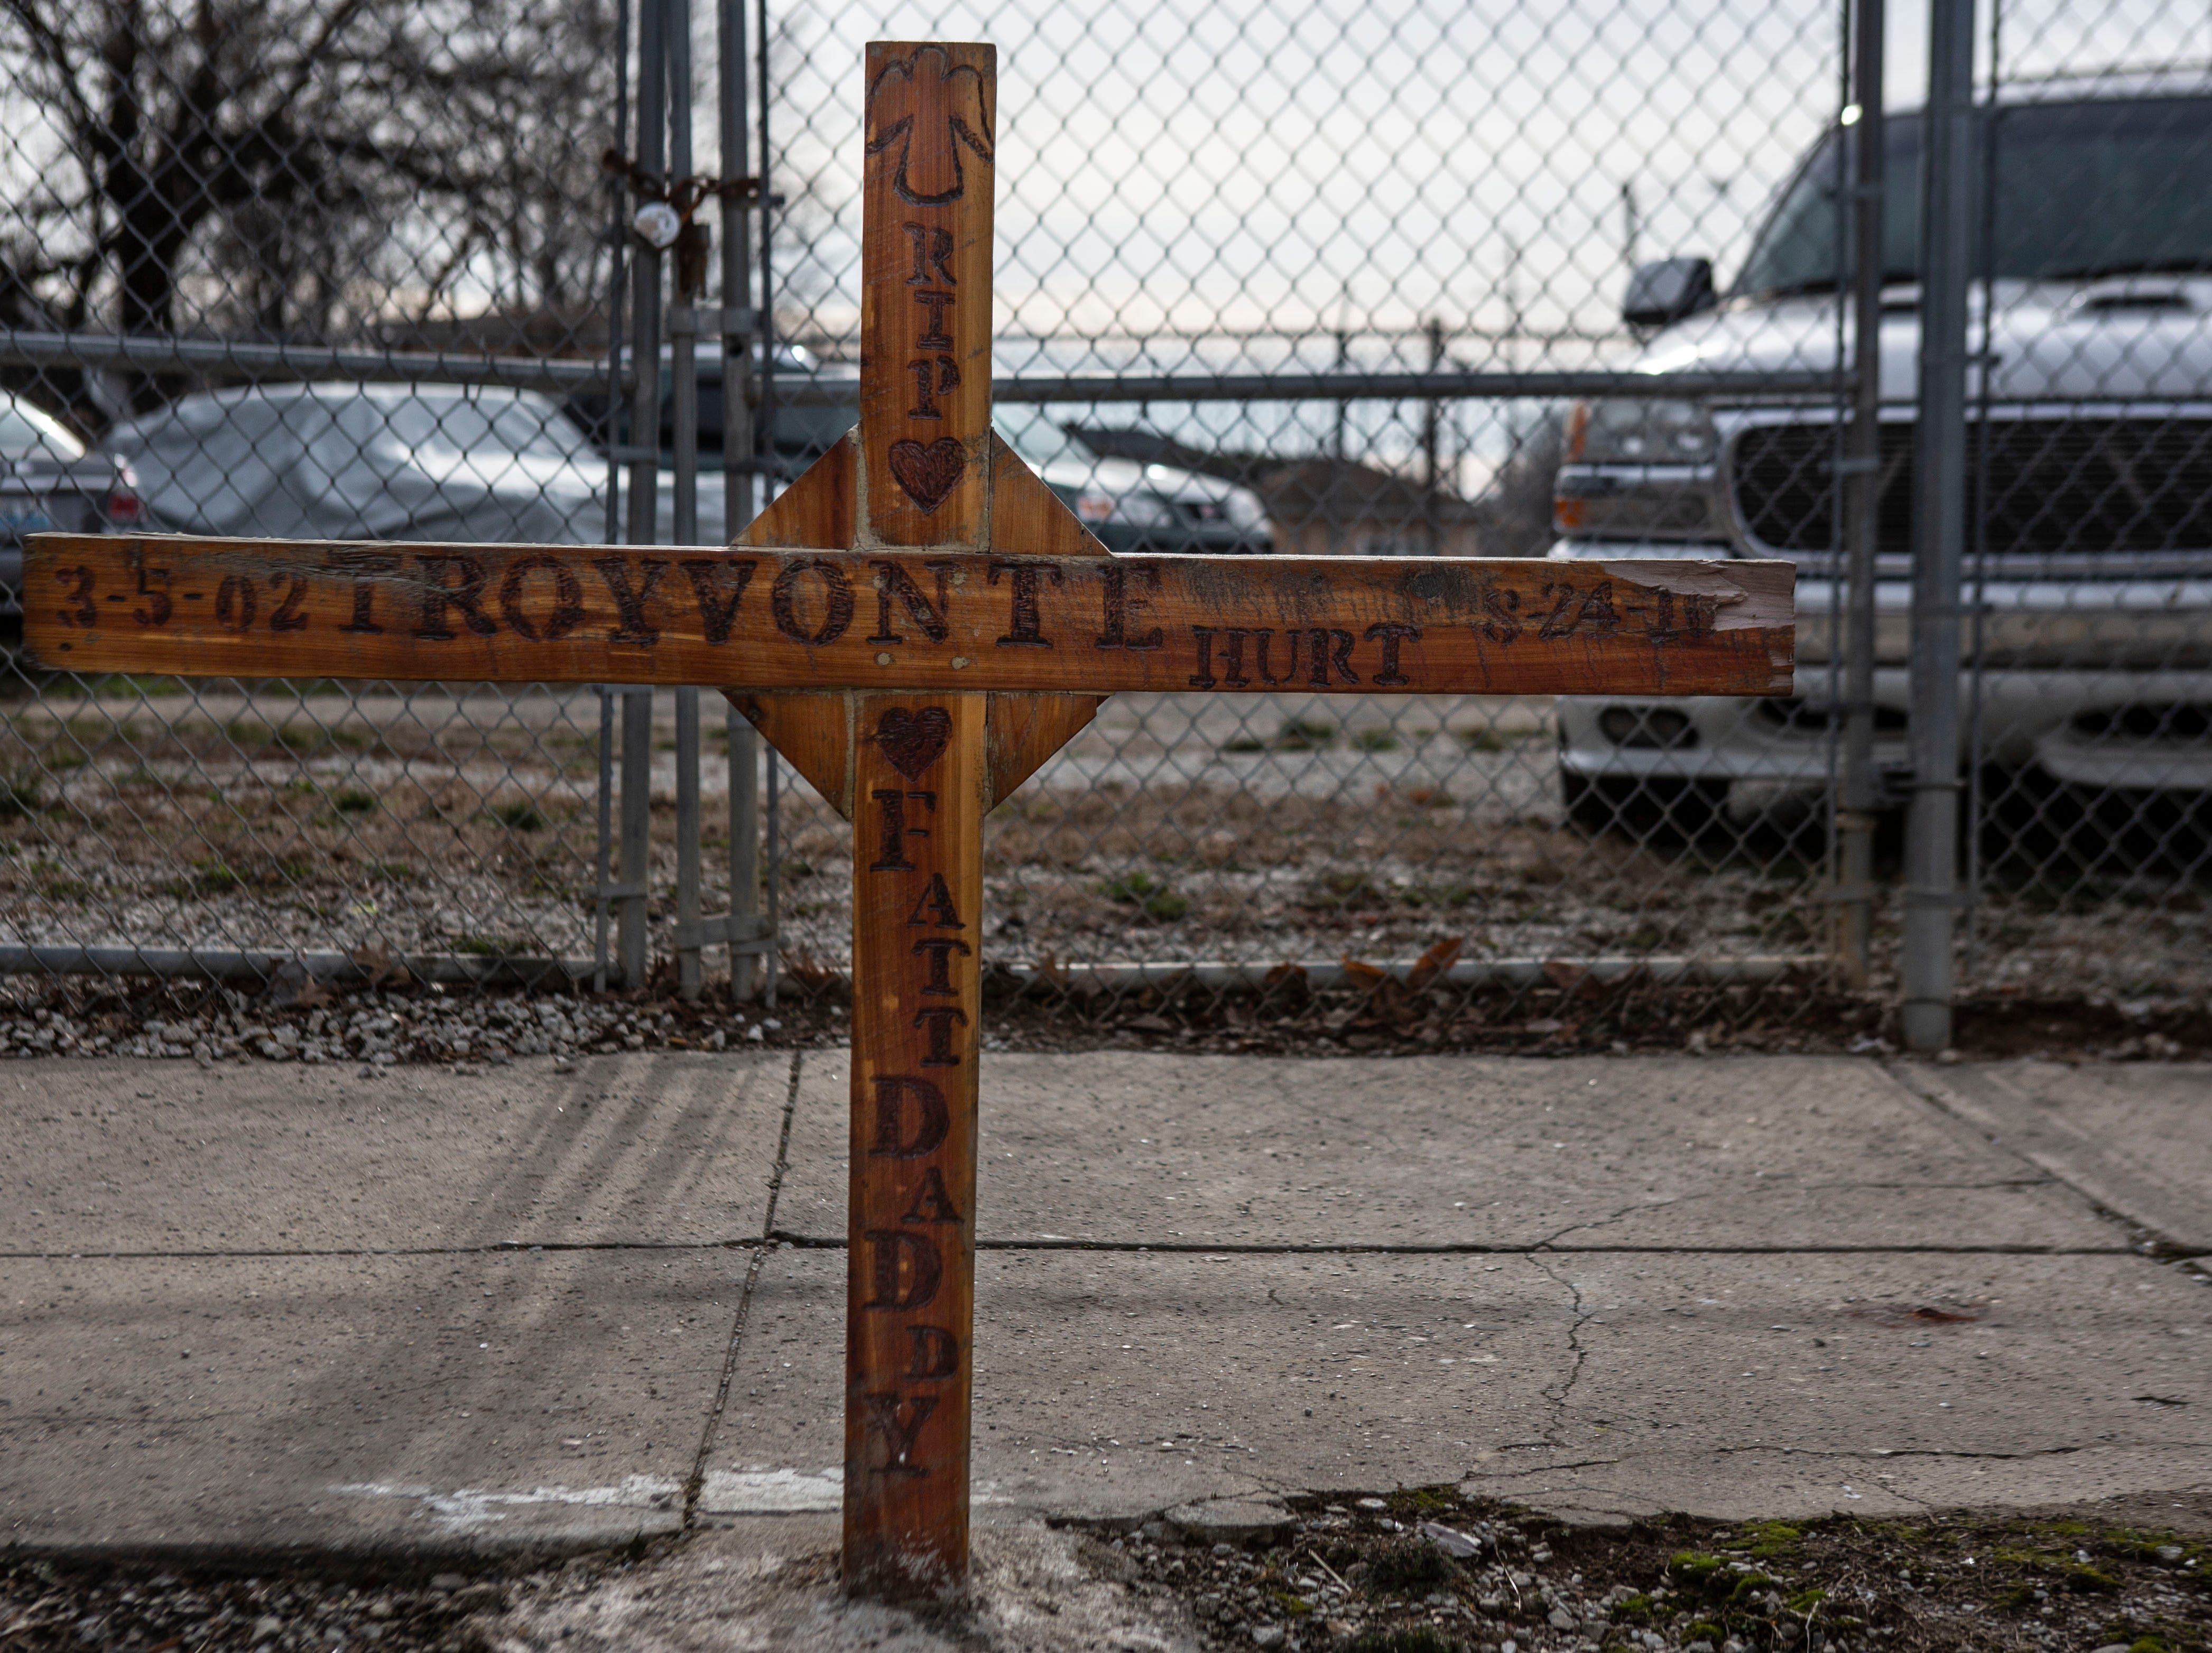 A cross was erected in memory of Troyvonte Hurt, 14, near the site of his murder at Clay and Jacob streets. Hurt was shot in the head during a drive-by shooting, in 2016. Jan 11, 2019.